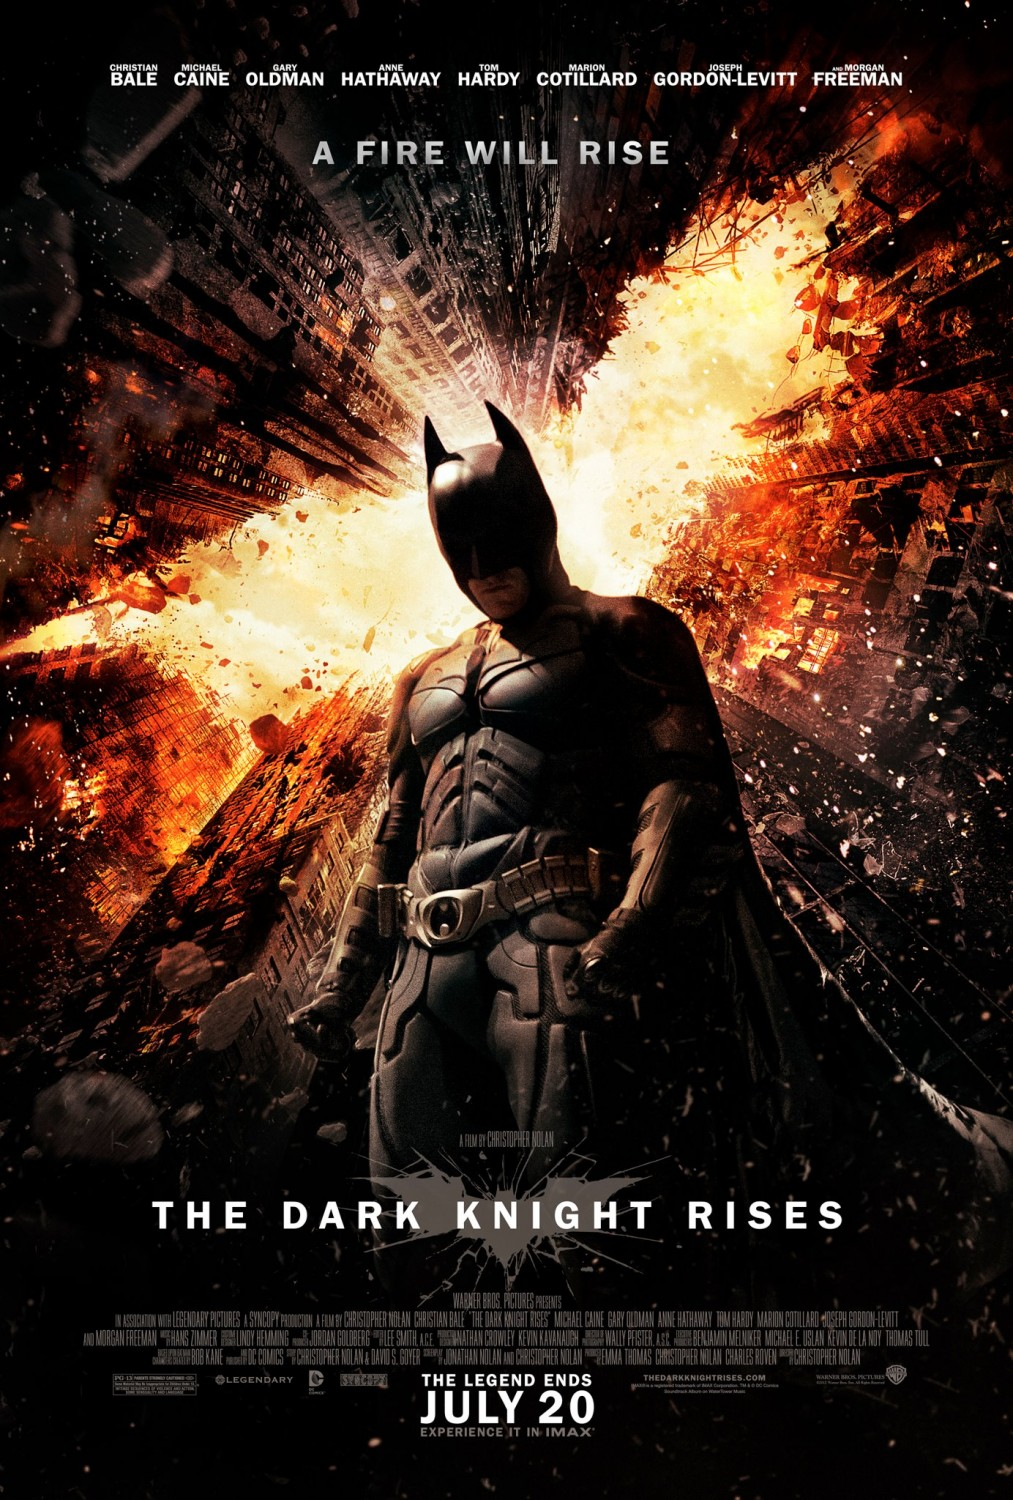 The Dark Knight Rises (Quelle: sf-fan.de)